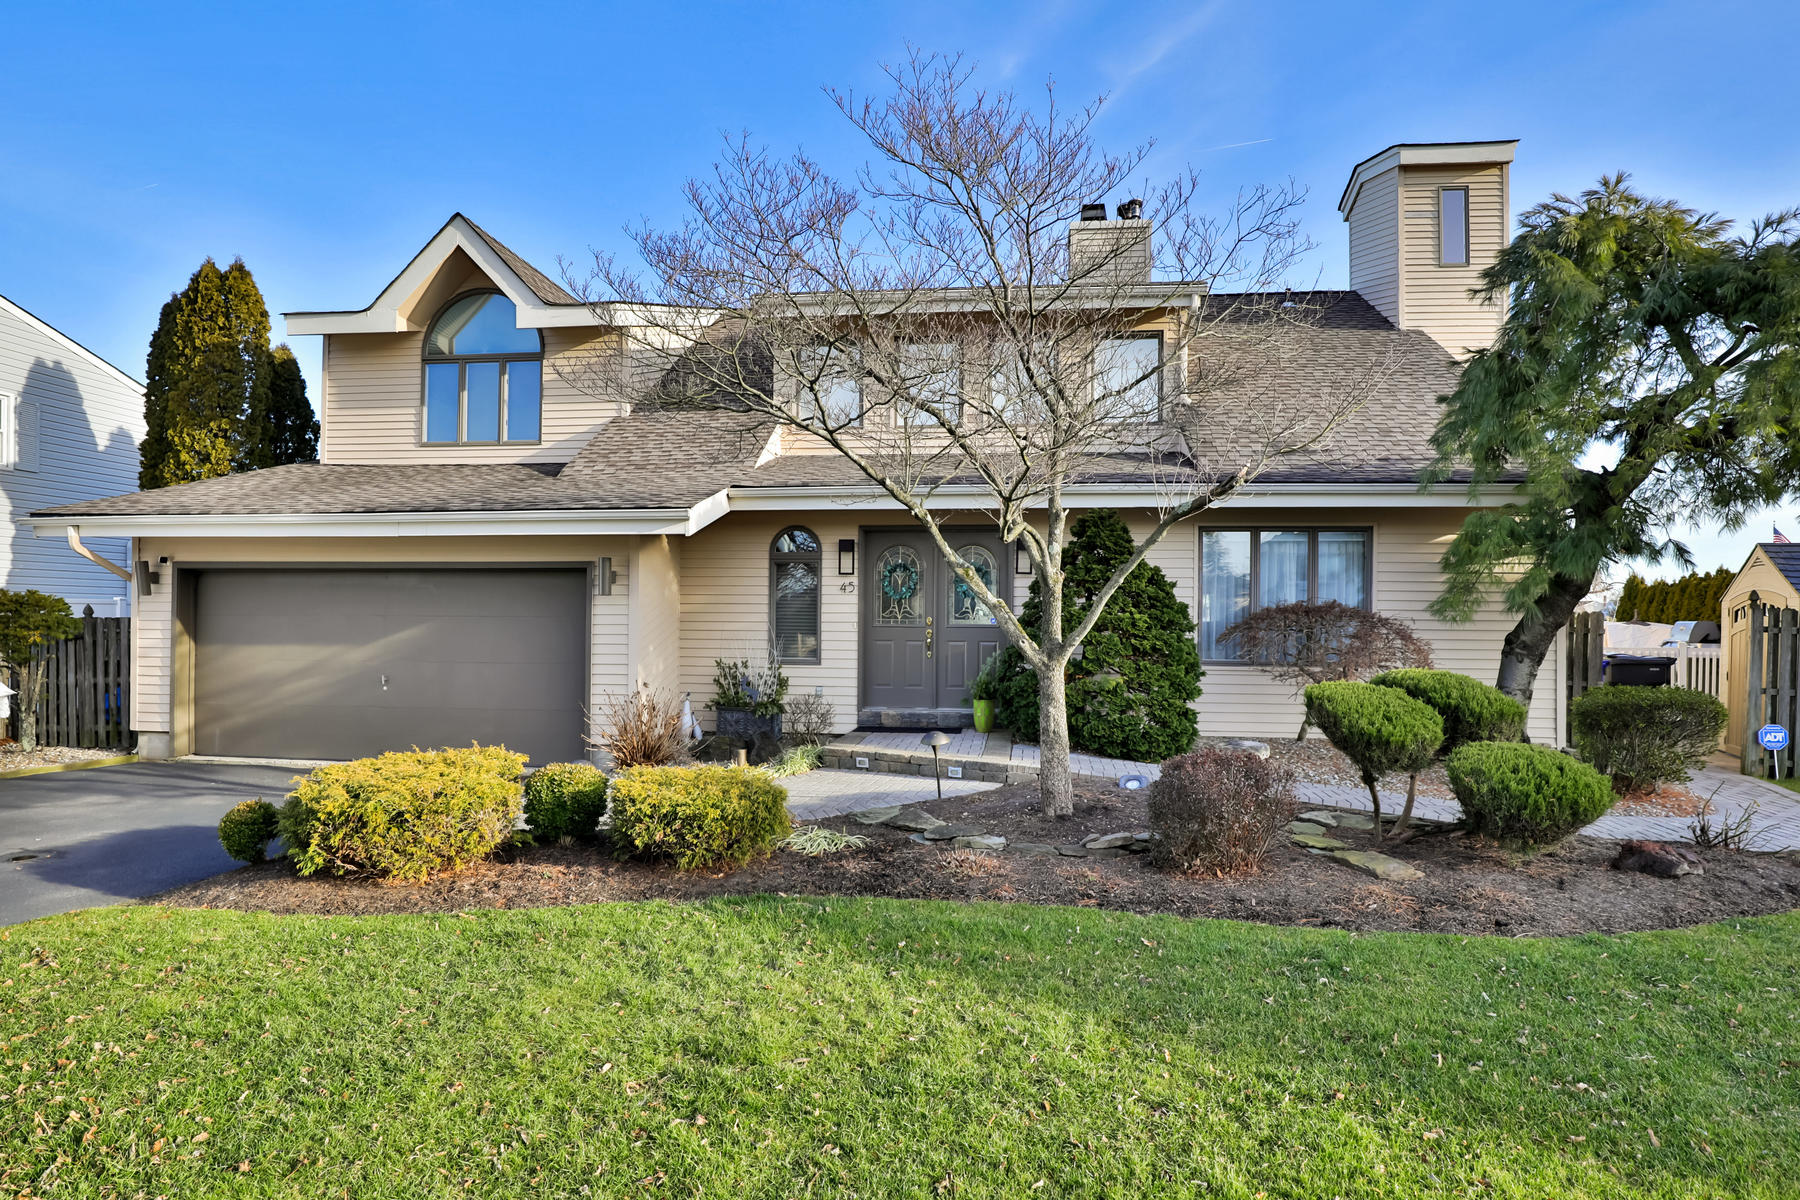 Single Family Homes for Sale at Entertainer's Delight Inside And Out 45 Florence Court Toms River, New Jersey 08753 United States